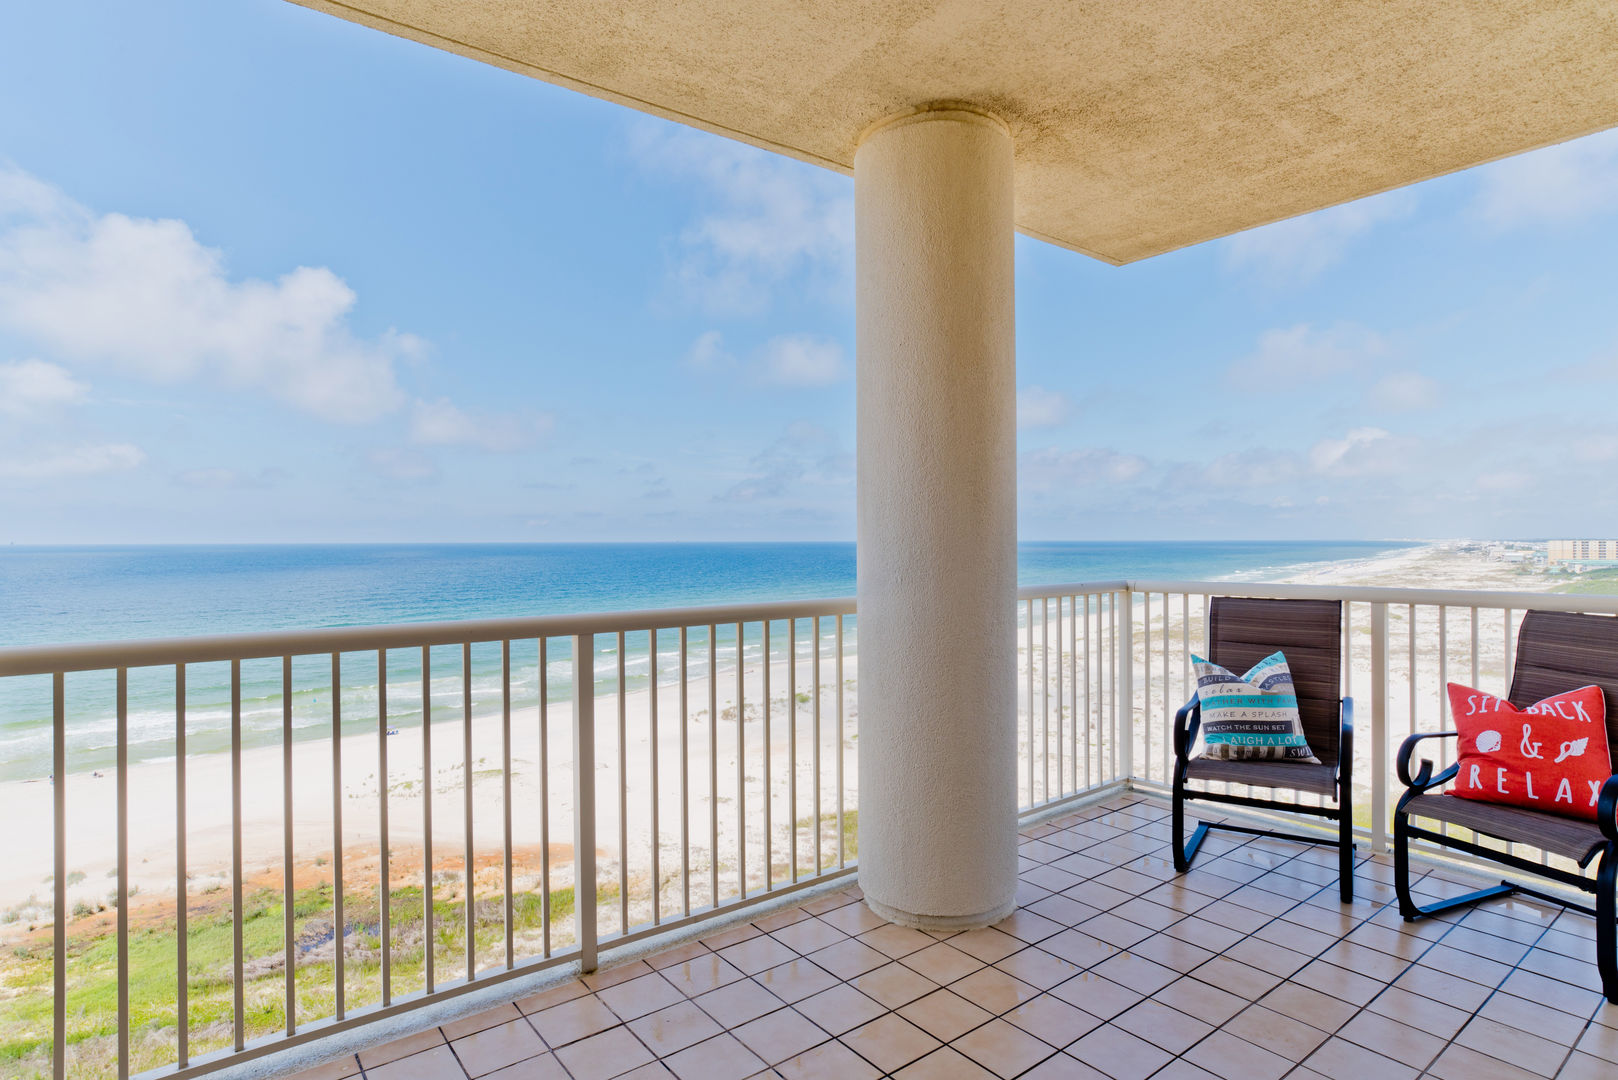 Sunset Paradise Is A West Corner Unit With Breathtaking Views And Wraparound Balcony!